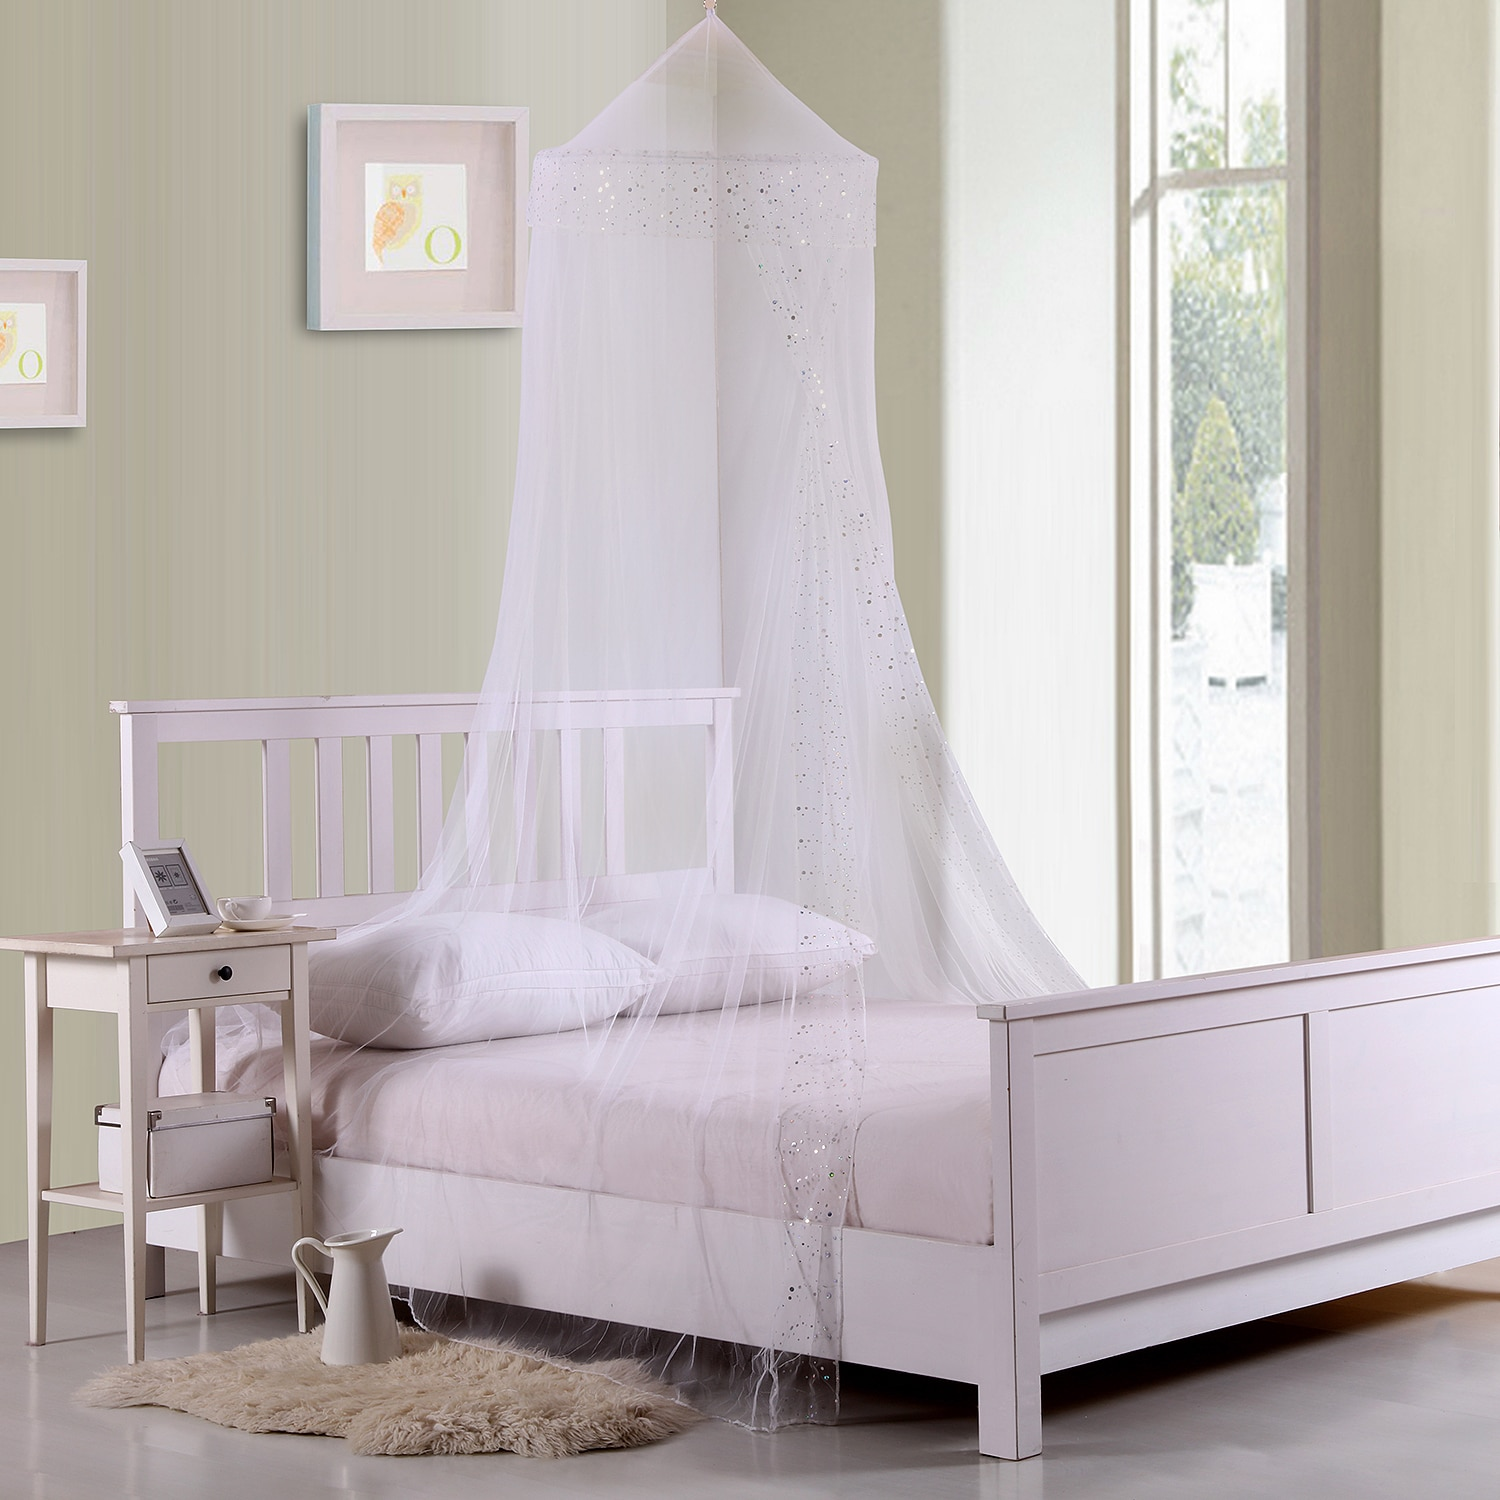 - Shop Sheer Galaxy Collapsible Hoop Kids Bed Canopy - On Sale